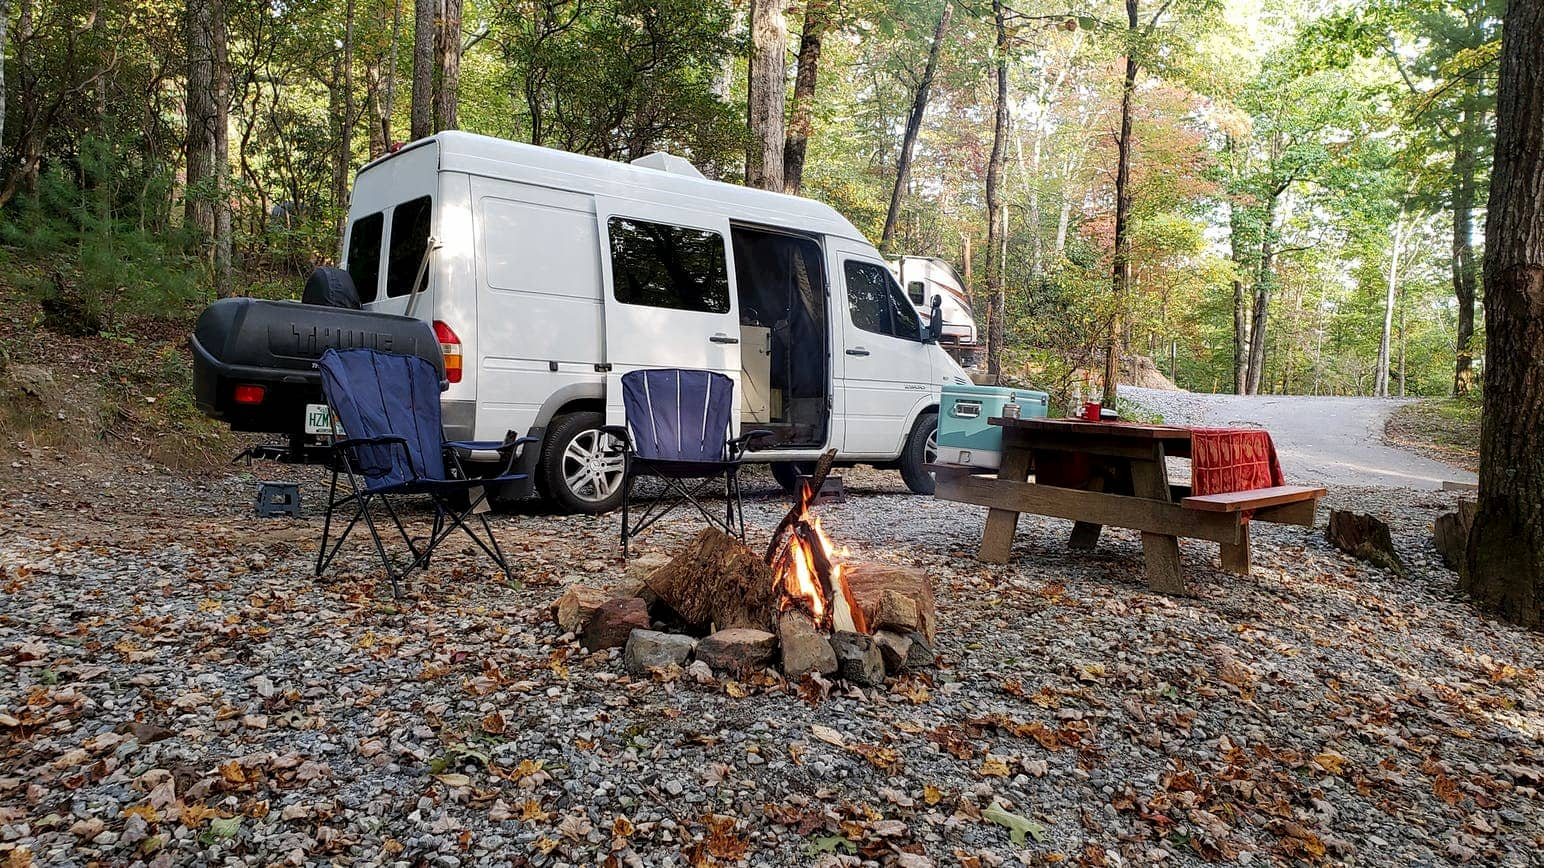 Camper sprinter van parked at campsite in the forest with a campfire burning near Asheville.